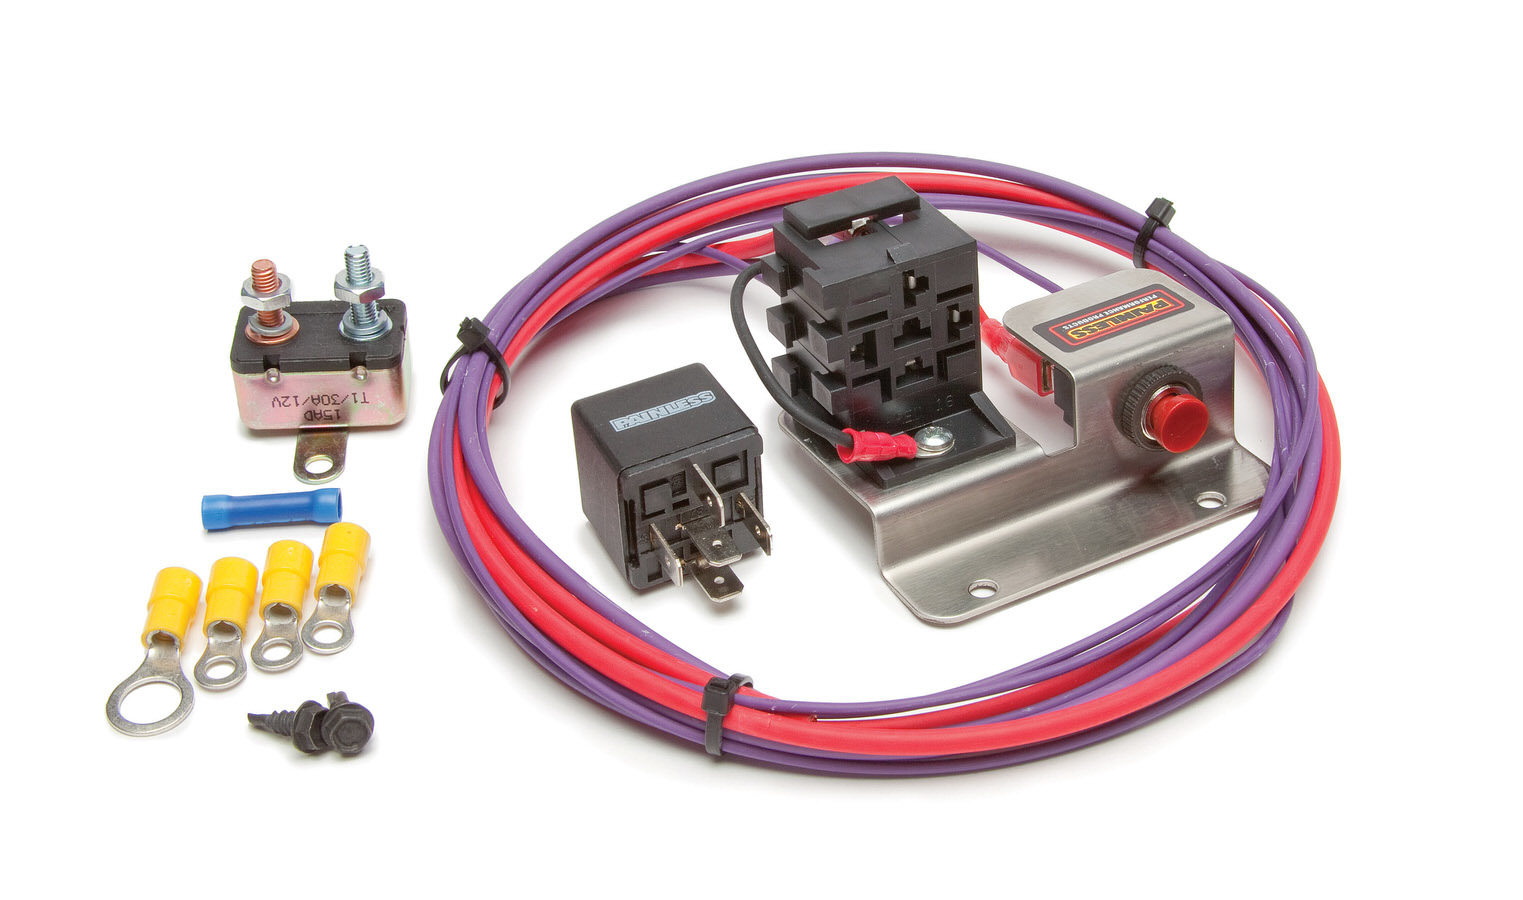 Painless Wiring 30201 Starter Relay, Hot Shot, 30 amp, 12V, Push Button Switch / Wiring Pigtail Included, Amperage Boost, Universal, Kit